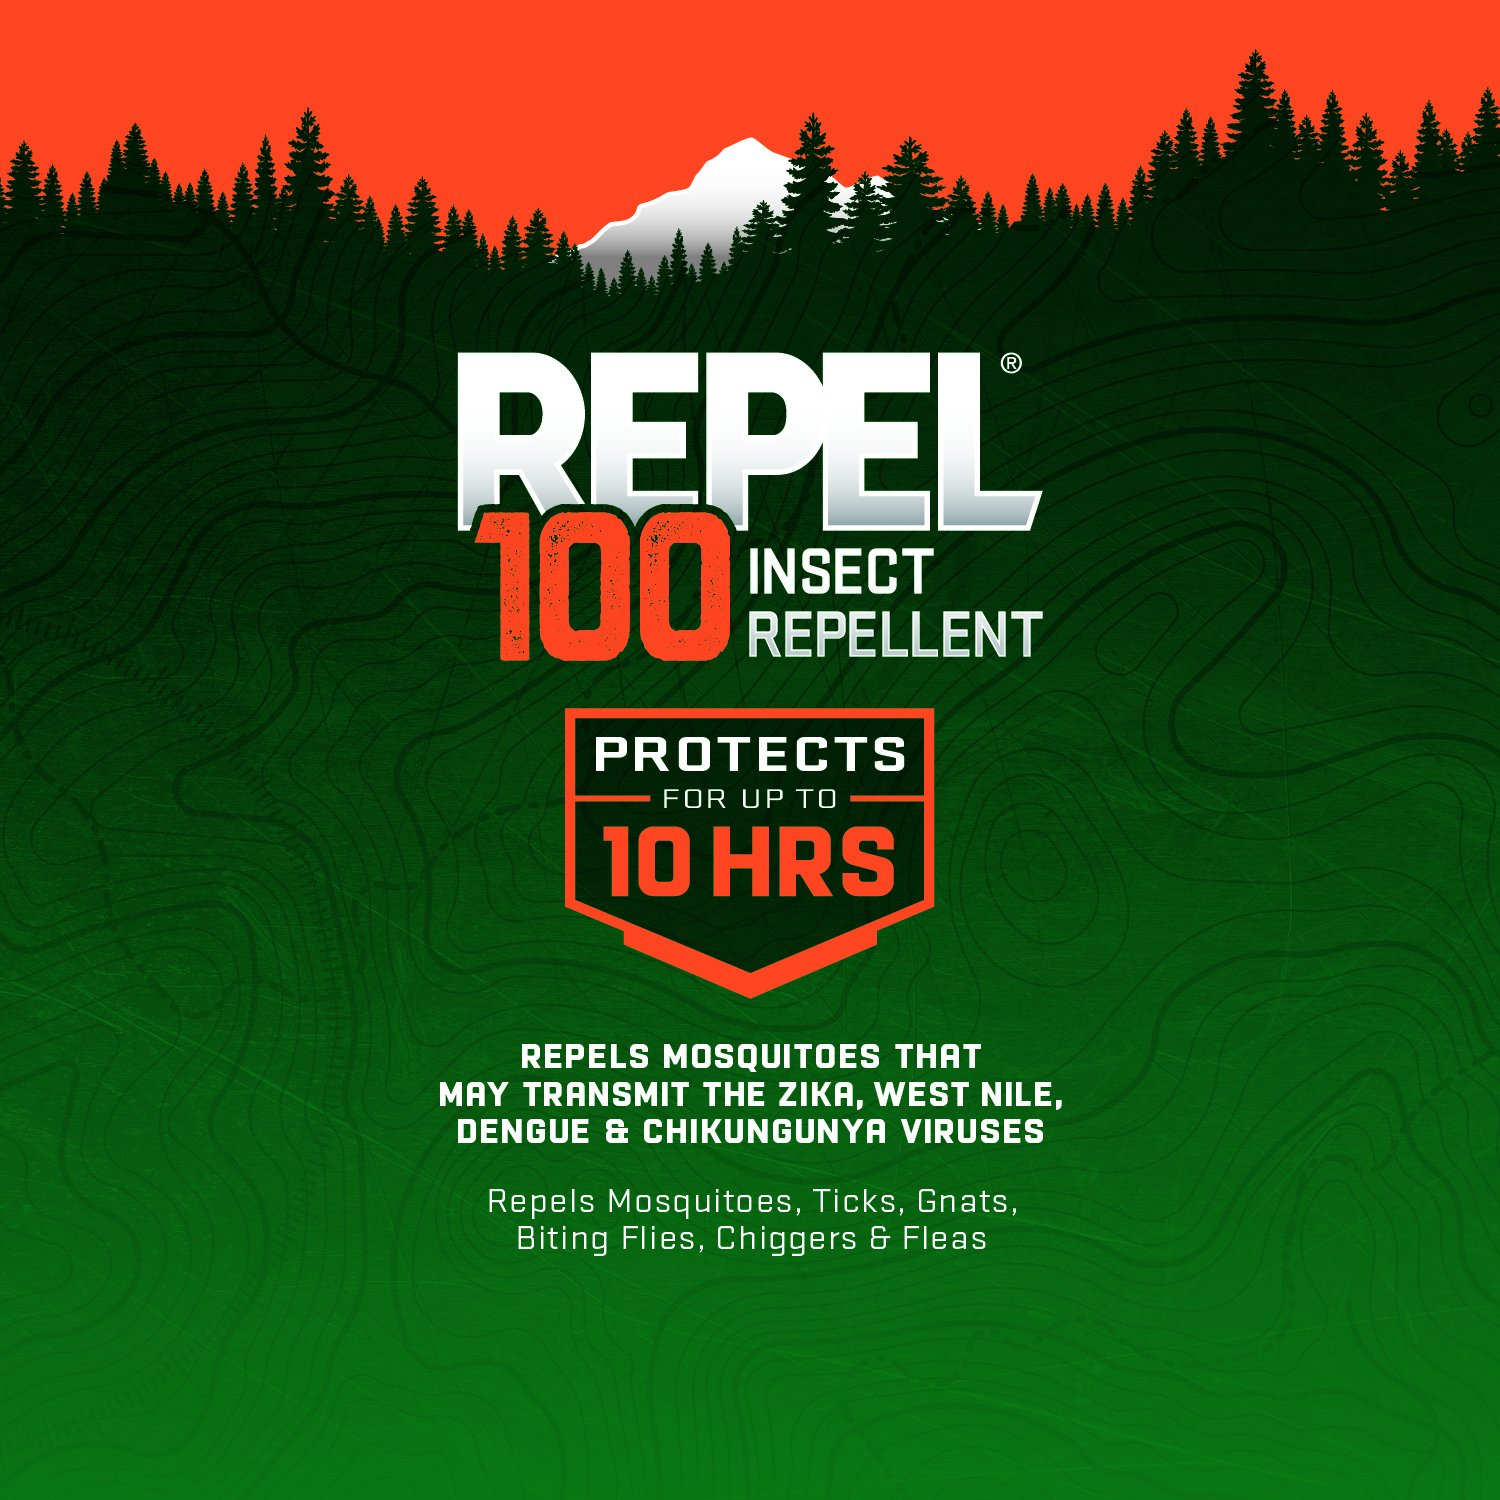 Repel 100 Insect Repellent, Pen-Size Pump Spray,0.475-Ounce by Repel (Image #3)